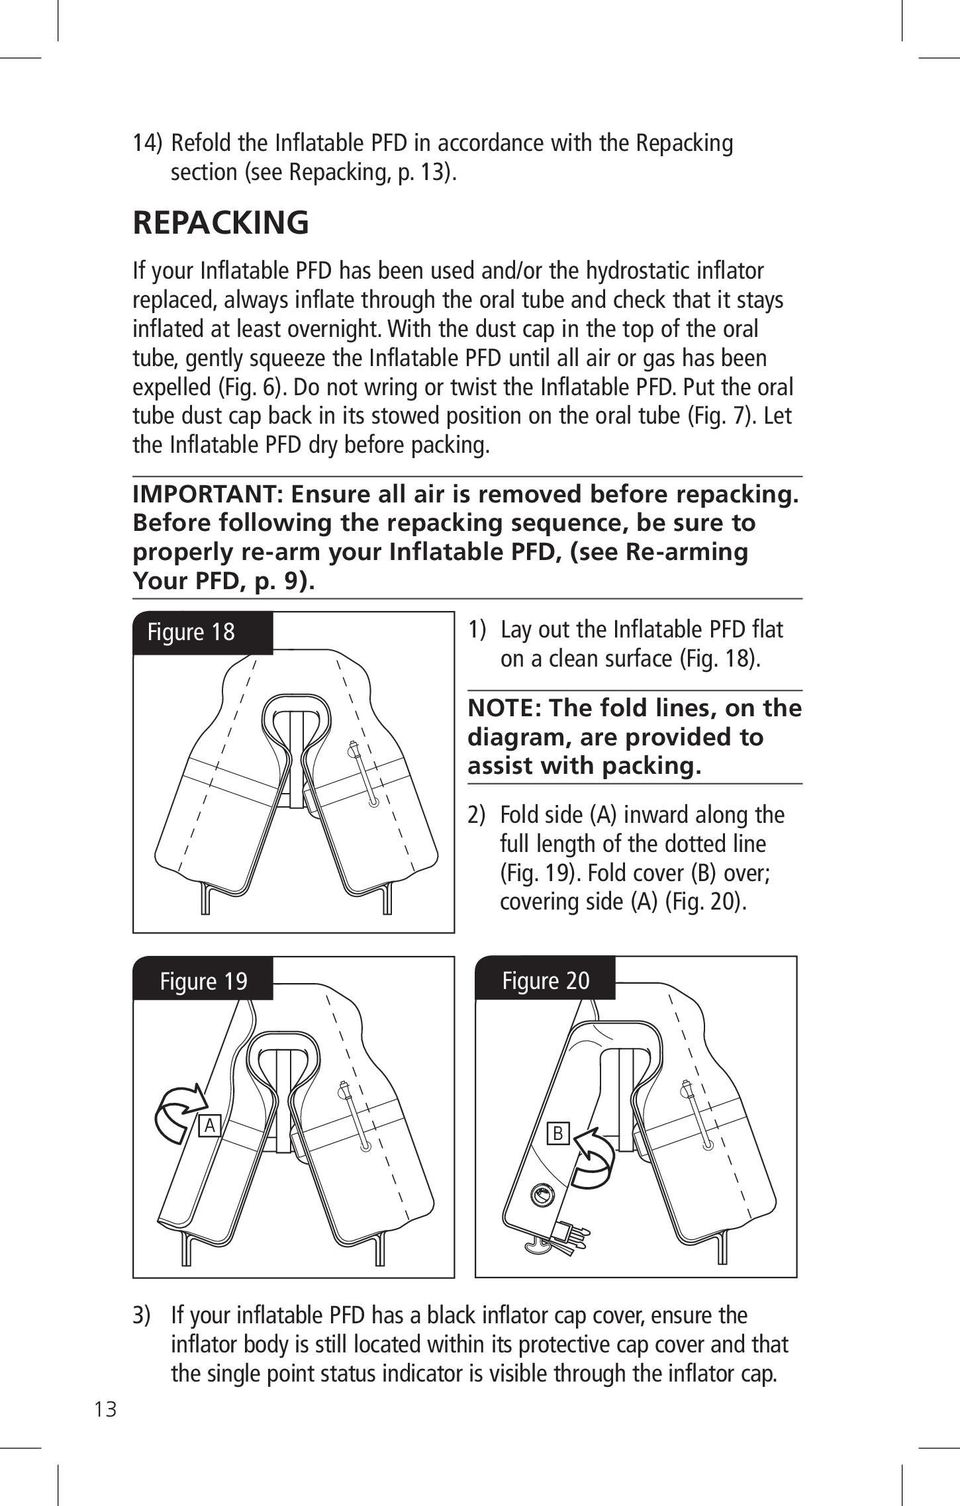 With the dust cap in the top of the oral tube, gently squeeze the Inflatable PFD until all air or gas has been expelled (Fig. 6). Do not wring or twist the Inflatable PFD.